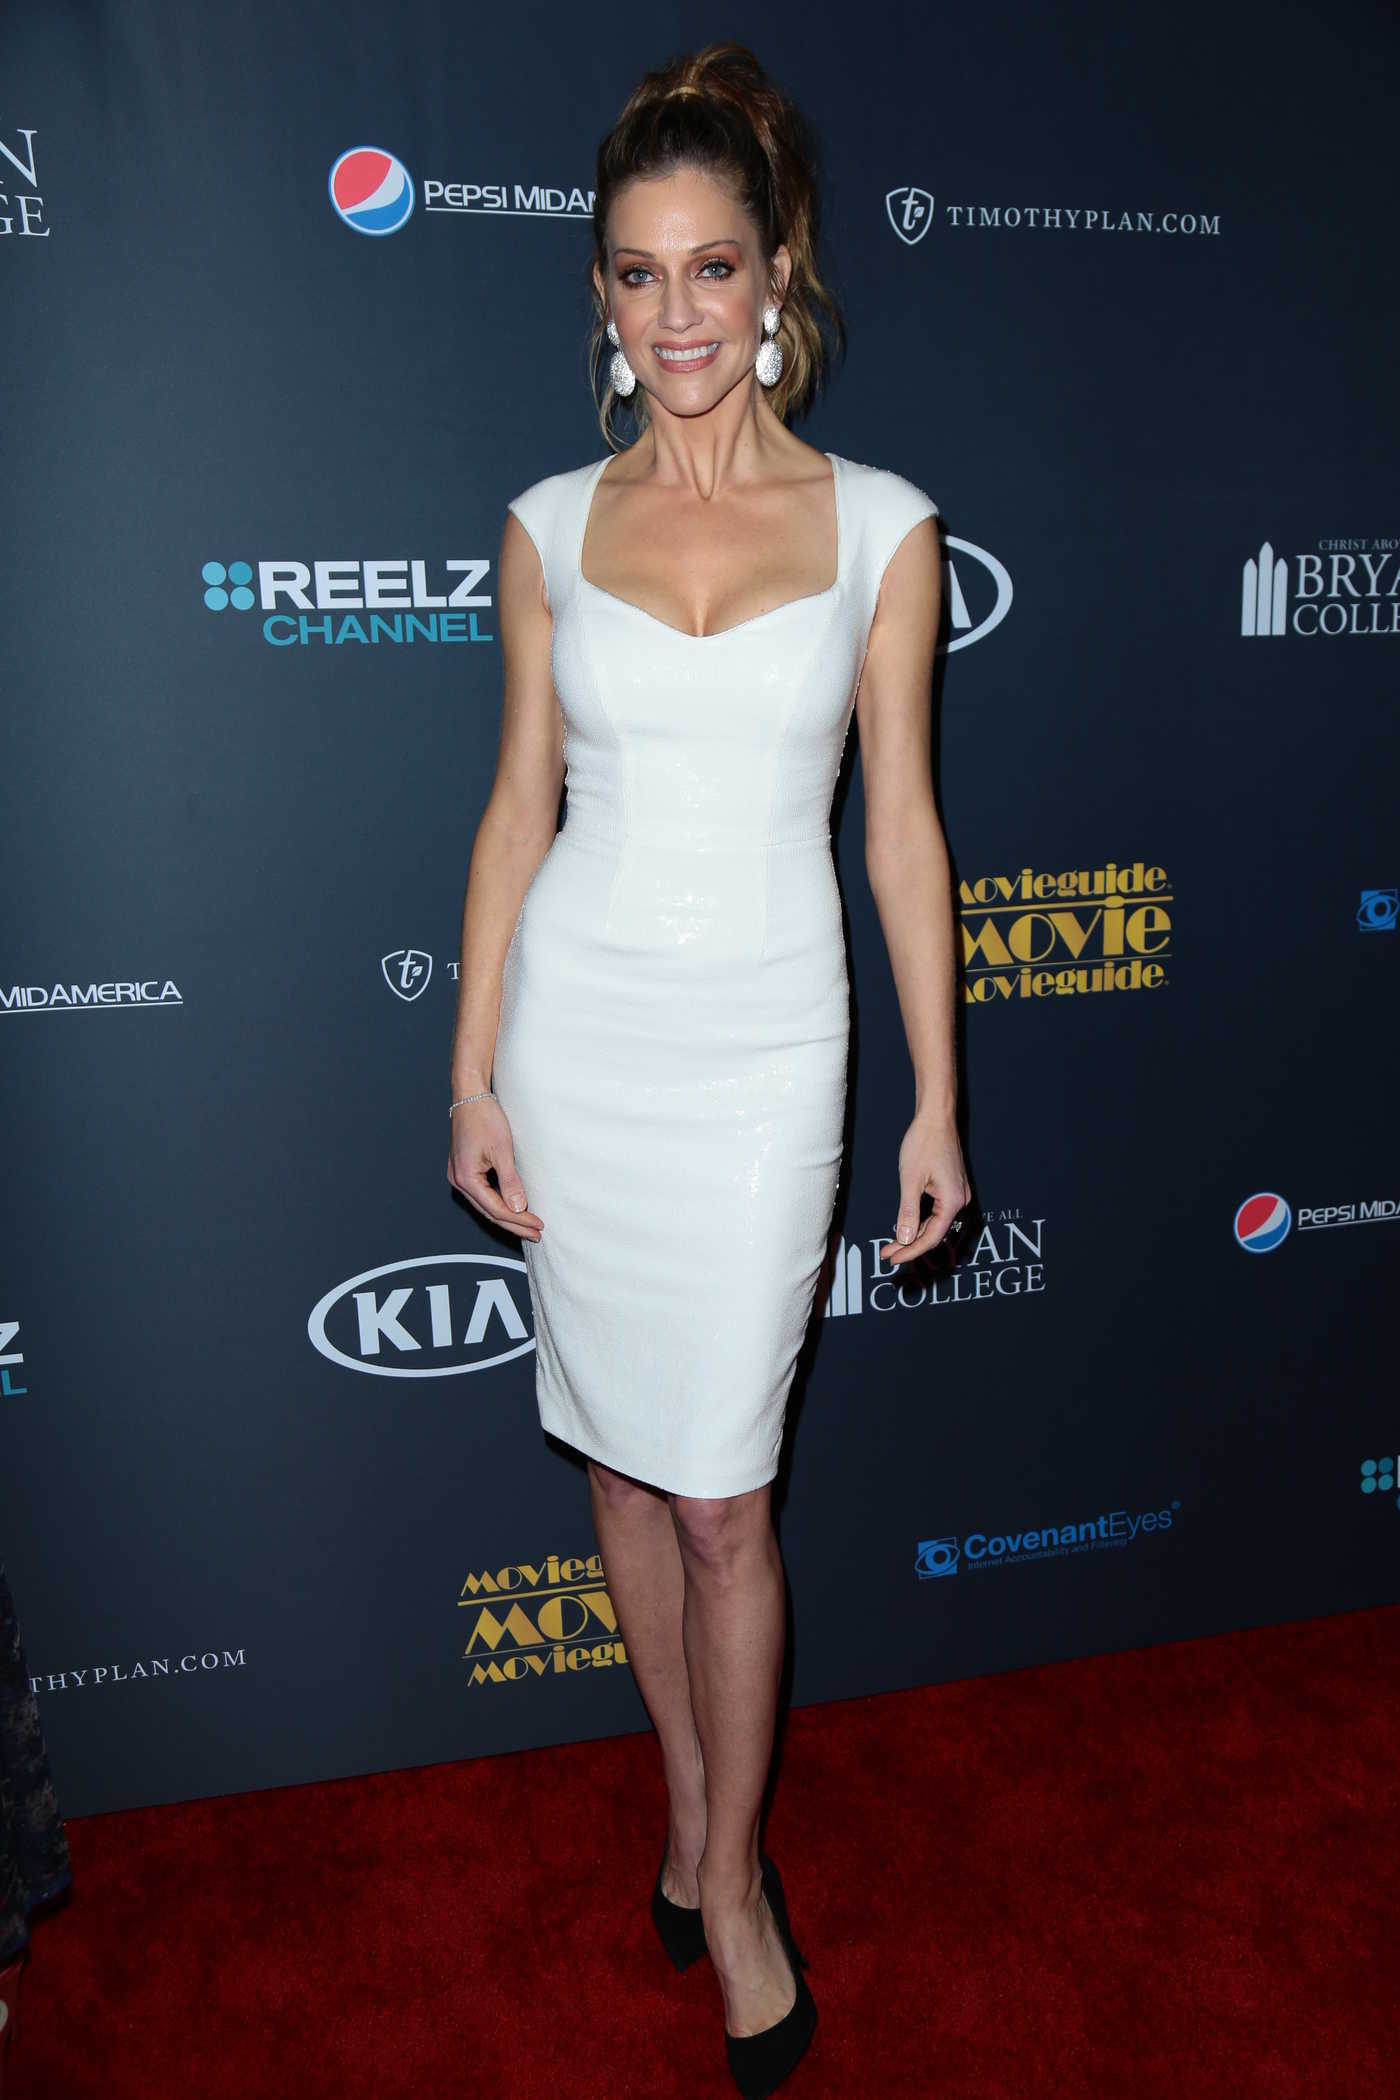 Tricia Helfer at the 25th Annual Movieguide Awards in Universal City 02/10/2017